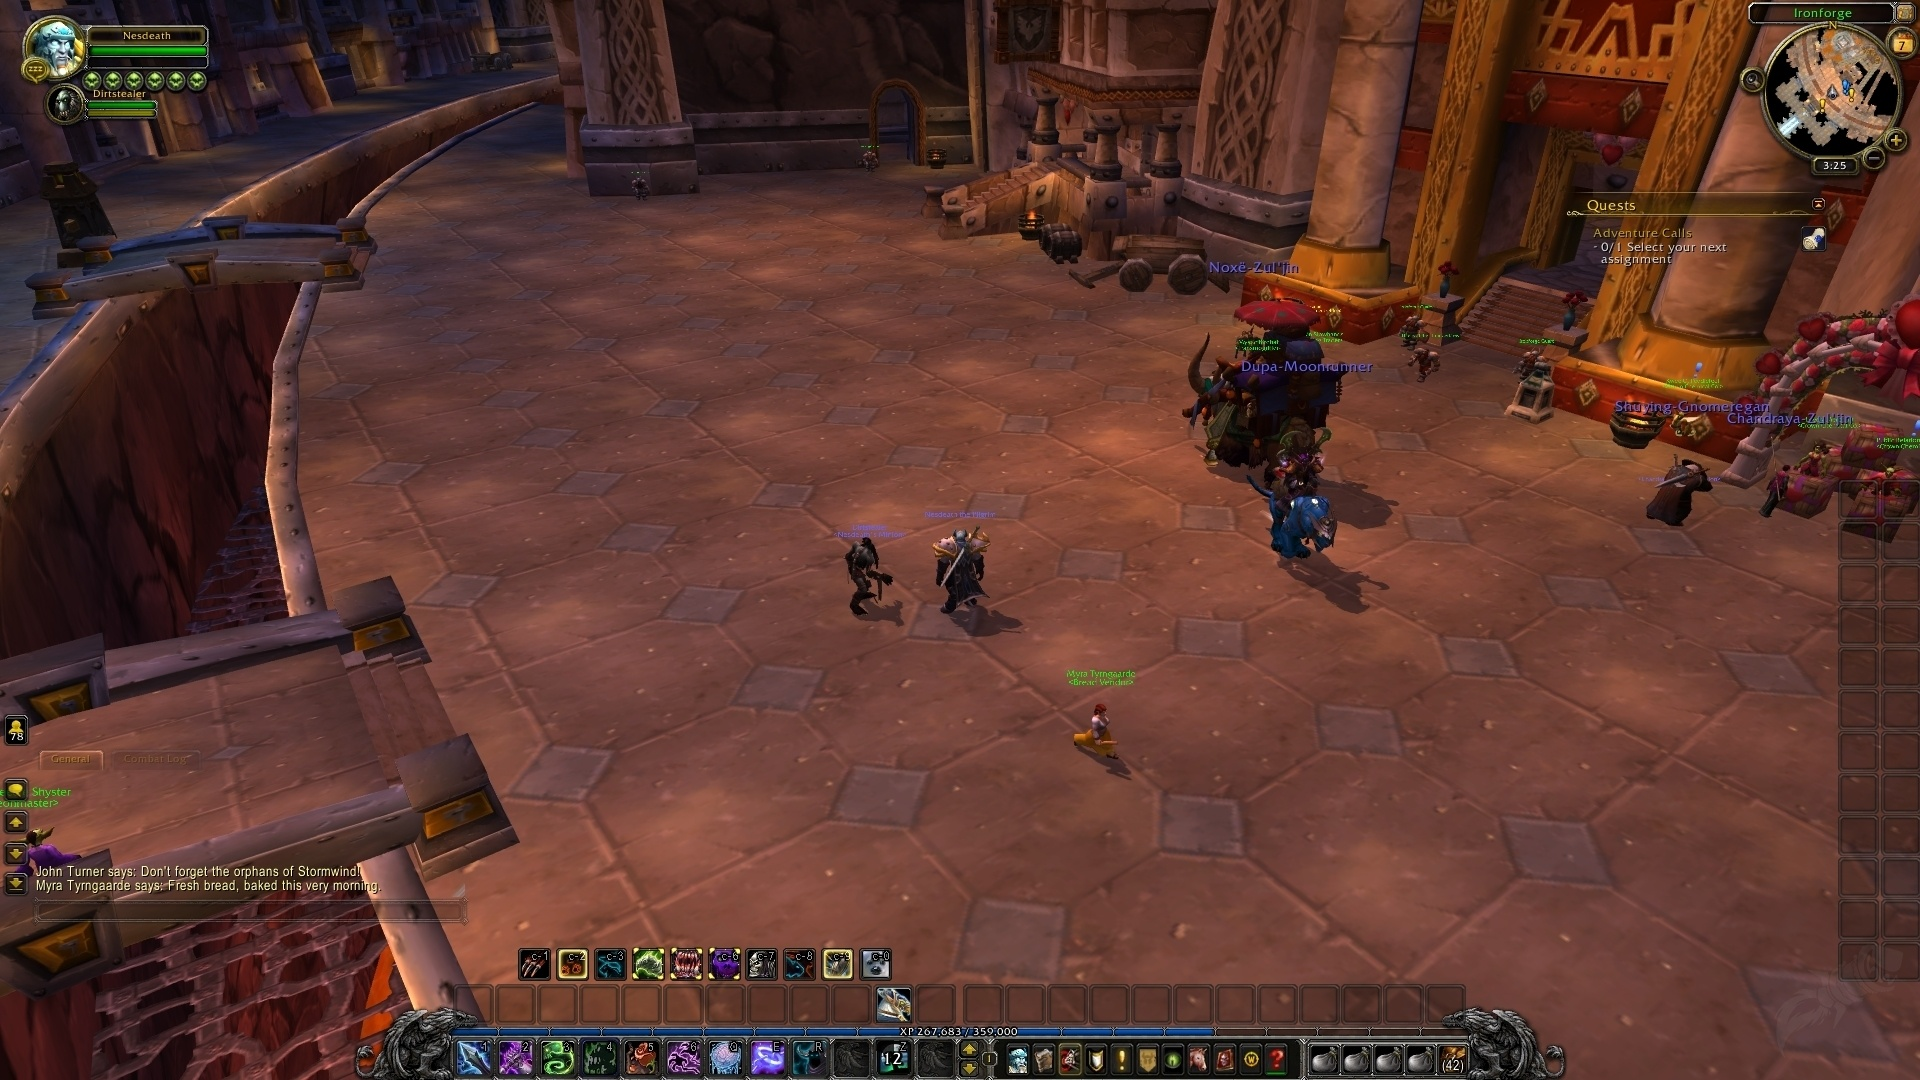 Battle for azeroth alpha new ui changes world maps wowhead news battle for azeroth alpha new ui changes world maps gumiabroncs Image collections